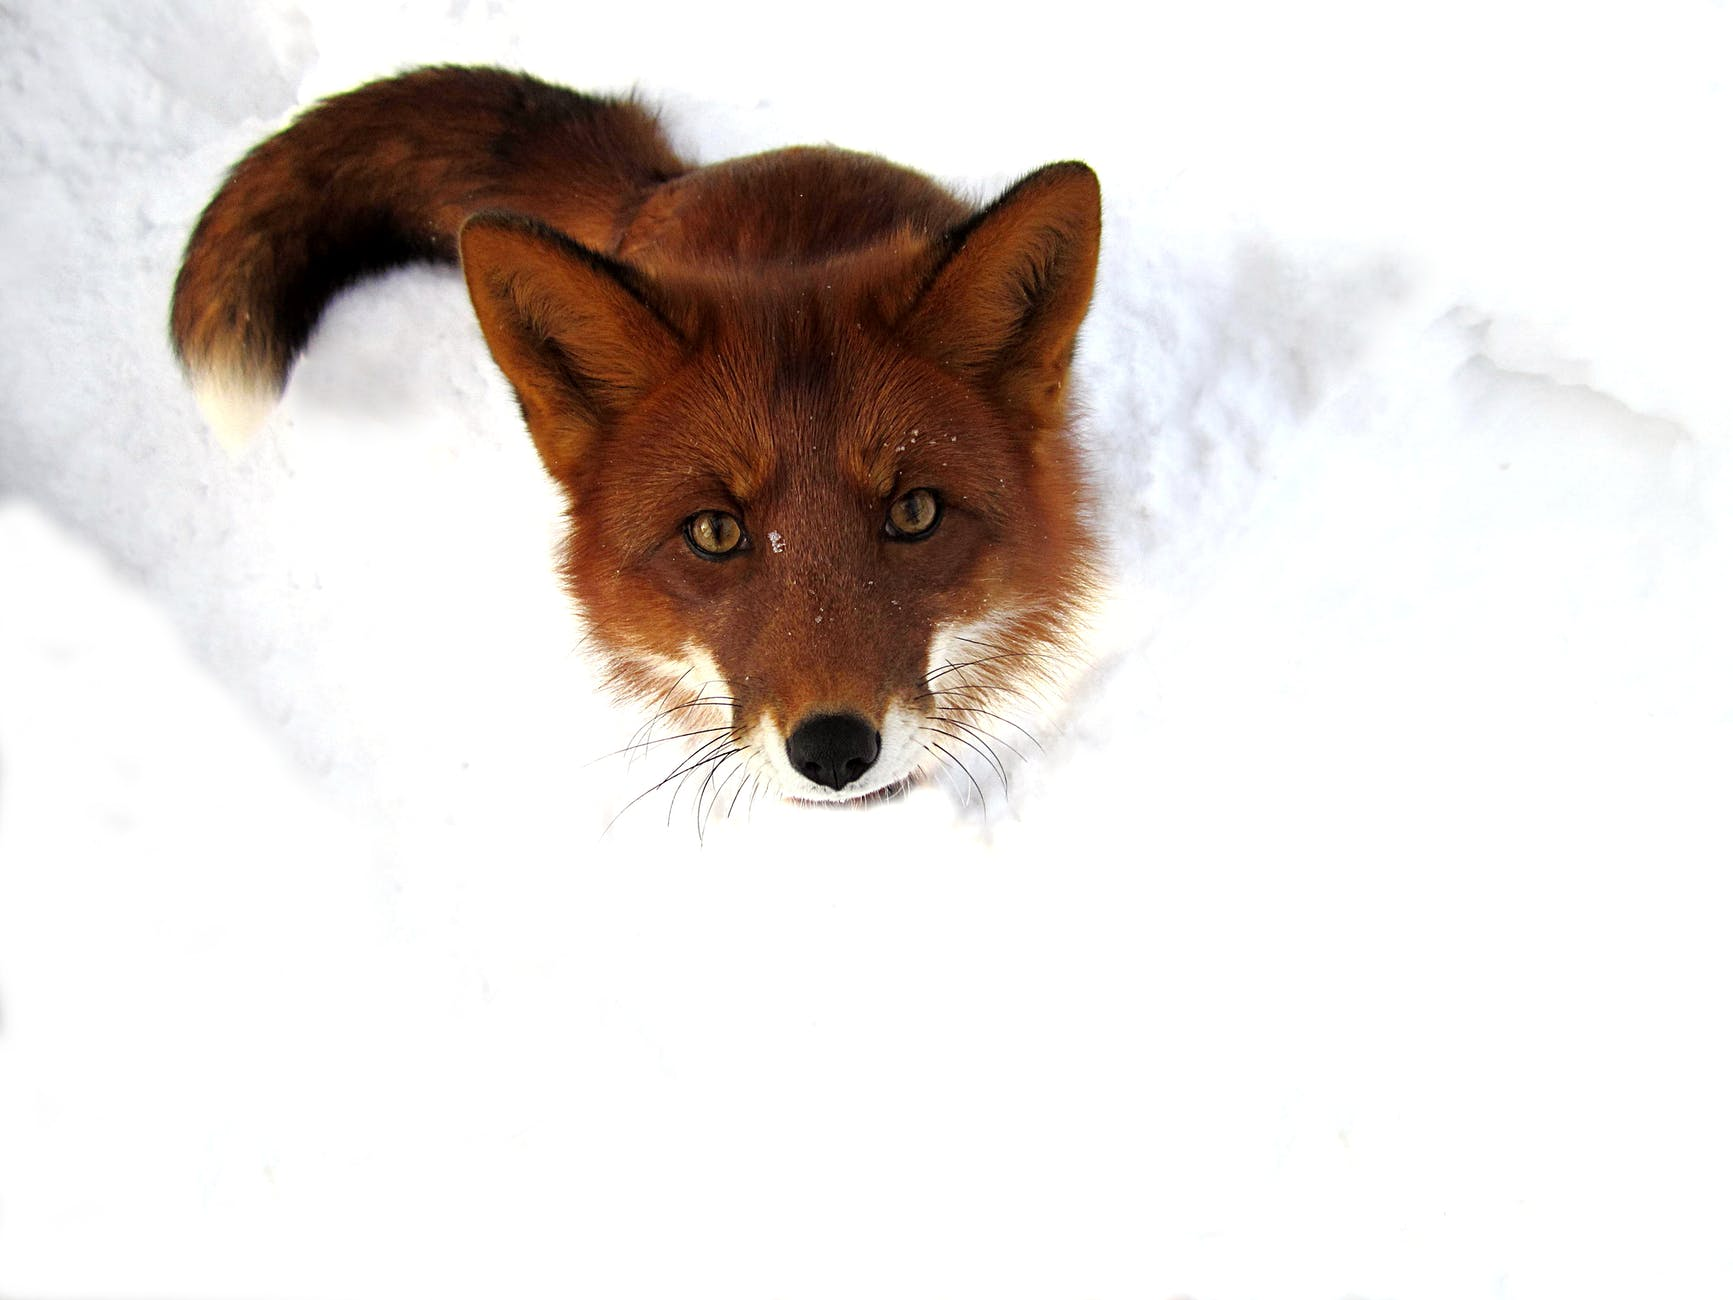 wild fluffy fox on snowy ground in winter